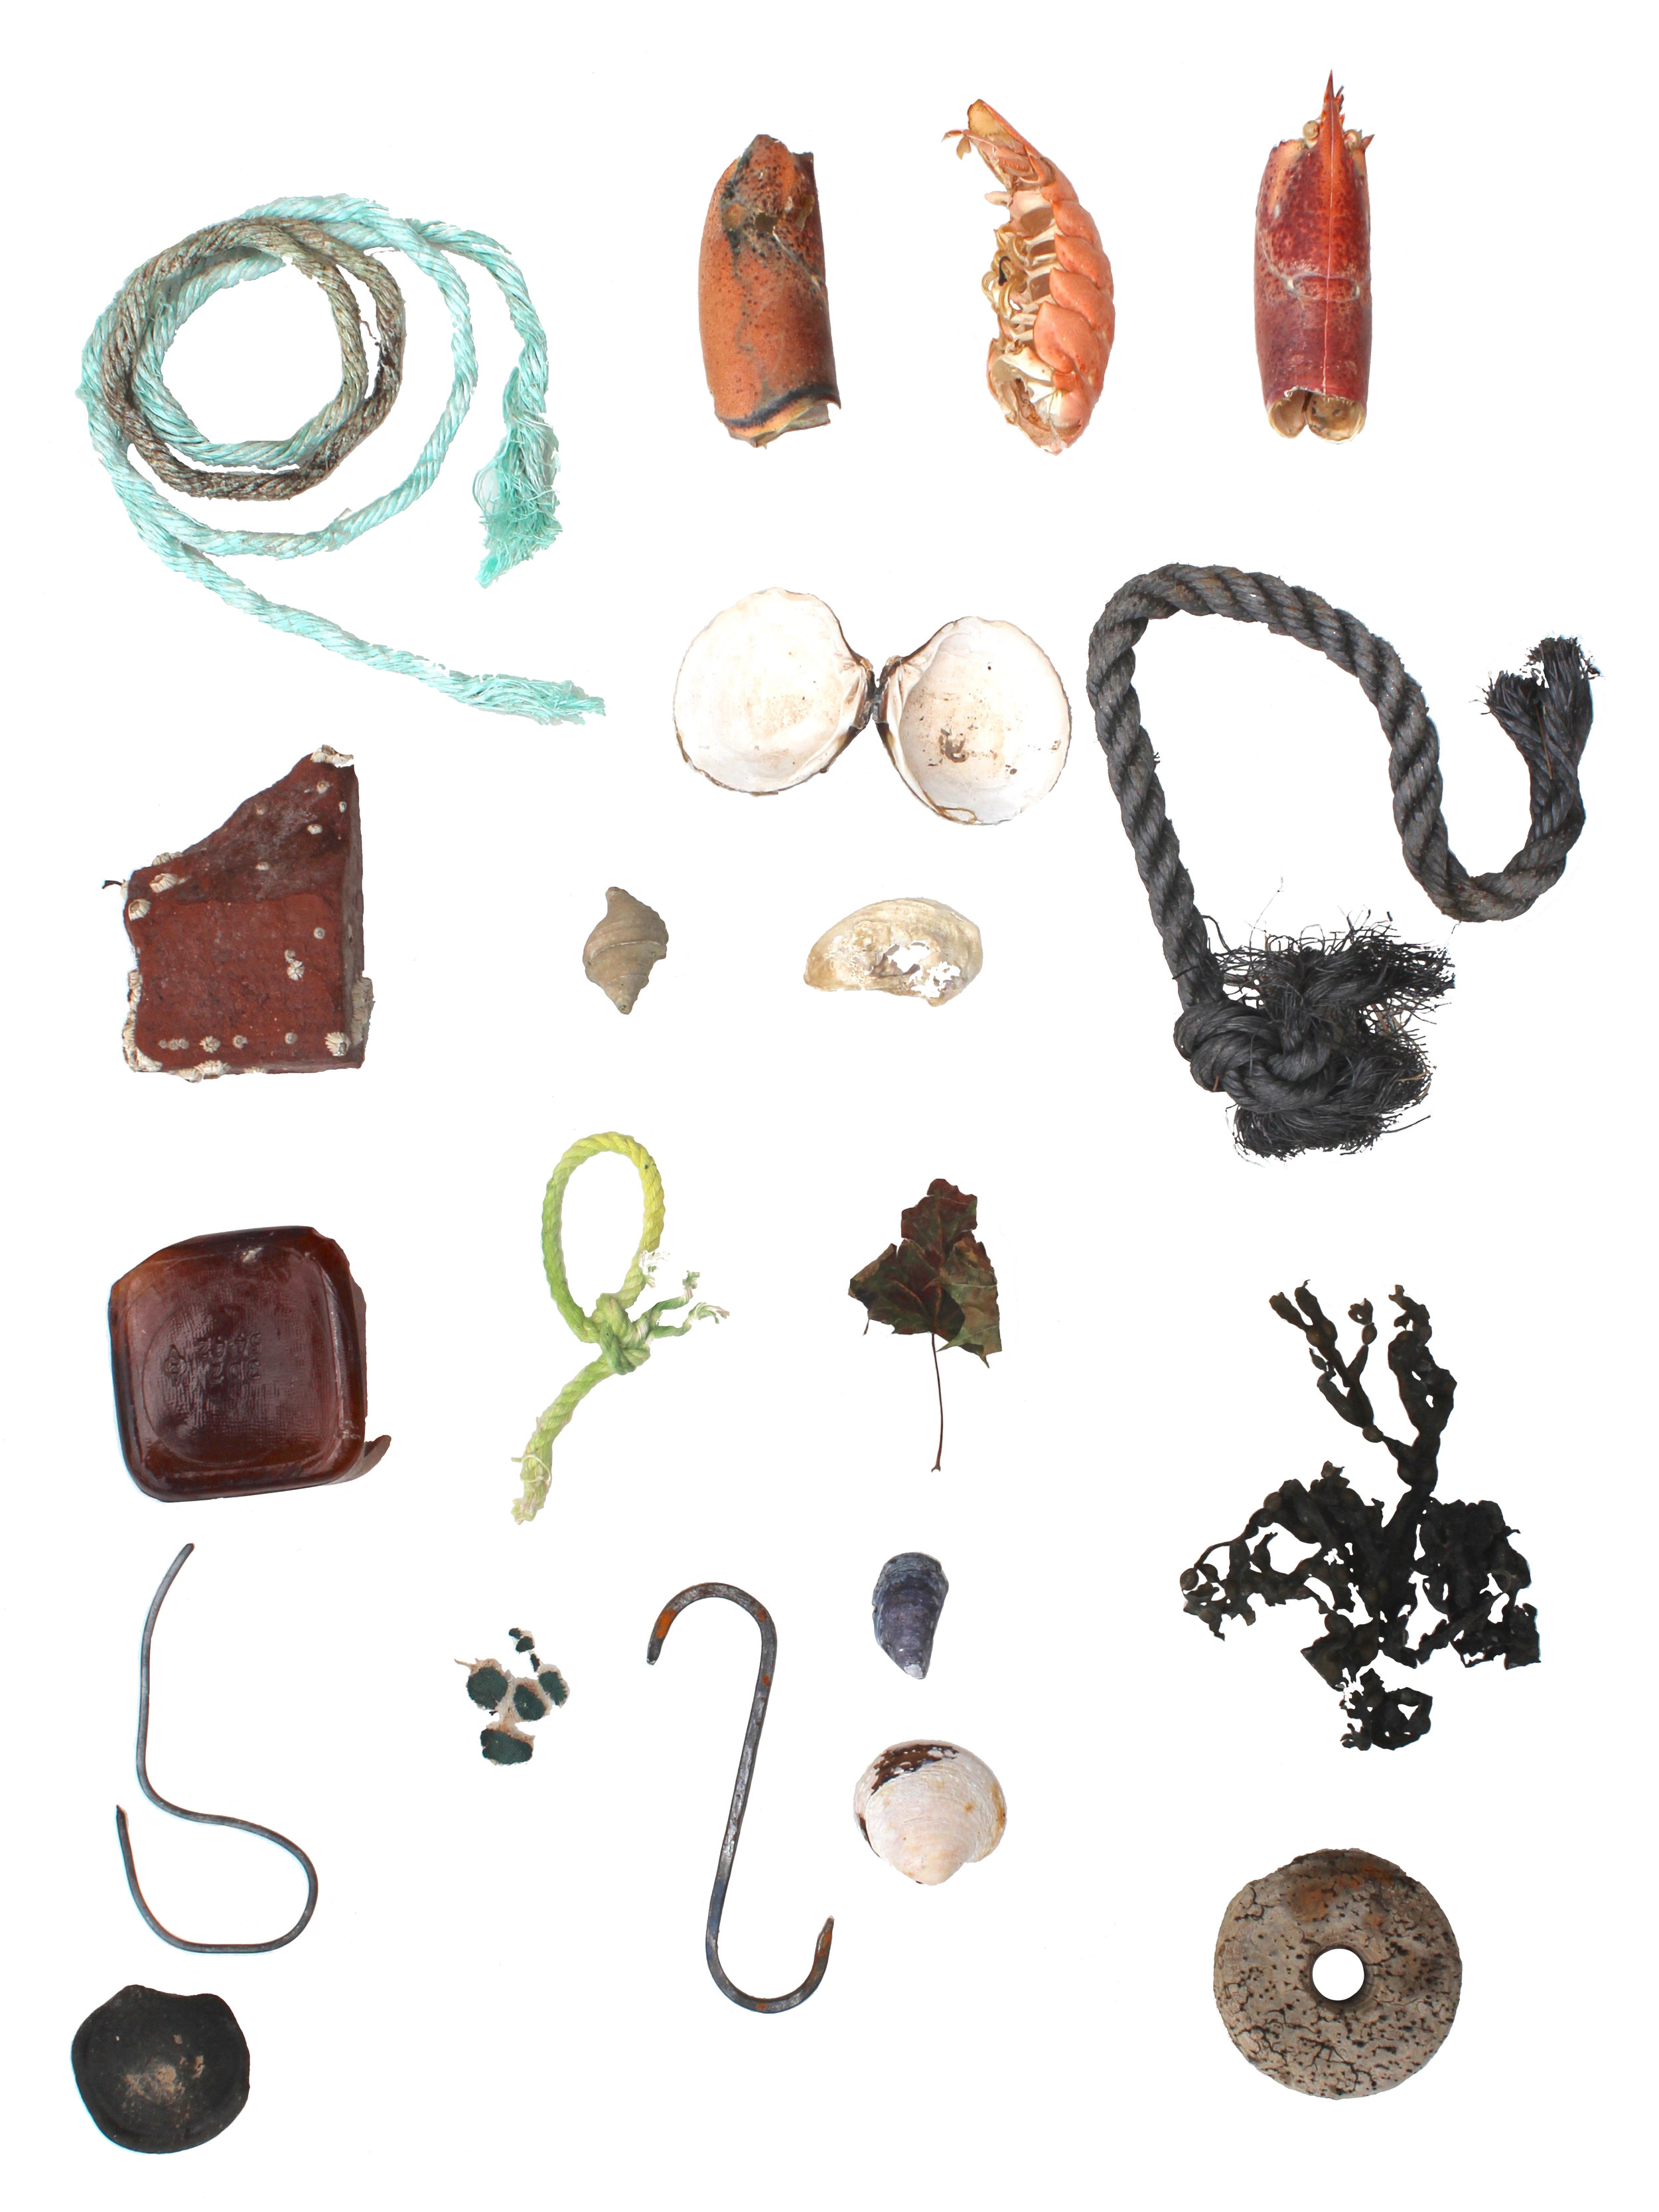 Objects of Land and Sea, digital print on paper, 21.5 x 17 inches, 2016